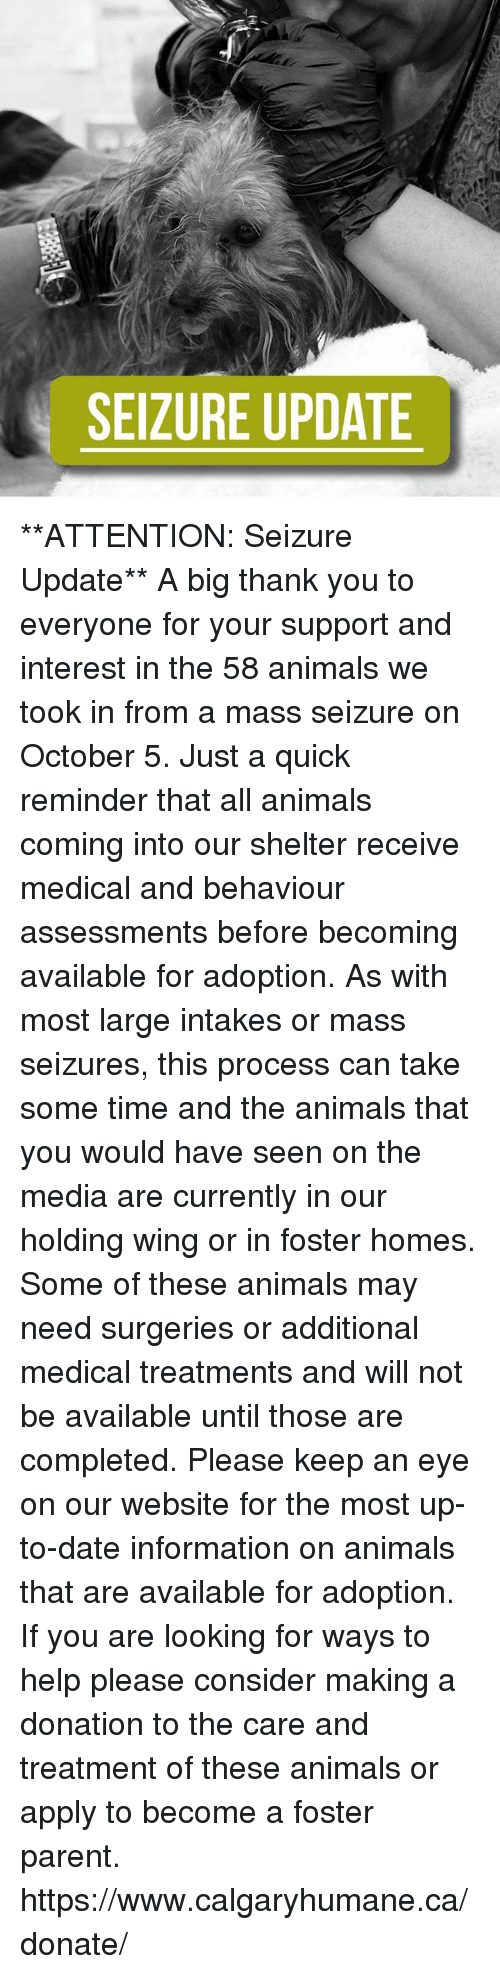 Animals, Memes, and Thank You: SEIZURE UPDATE **ATTENTION: Seizure Update**   A big thank you to everyone for your support and interest in the 58 animals we took in from a mass seizure on October 5.   Just a quick reminder that all animals coming into our shelter receive medical and behaviour assessments before becoming available for adoption. As with most large intakes or mass seizures, this process can take some time and the animals that you would have seen on the media are currently in our holding wing or in foster homes. Some of these animals may need surgeries or additional medical treatments and will not be available until those are completed. Please keep an eye on our website for the most up-to-date information on animals that are available for adoption.   If you are looking for ways to help please consider making a donation to the care and treatment of these animals or apply to become a foster parent. https://www.calgaryhumane.ca/donate/